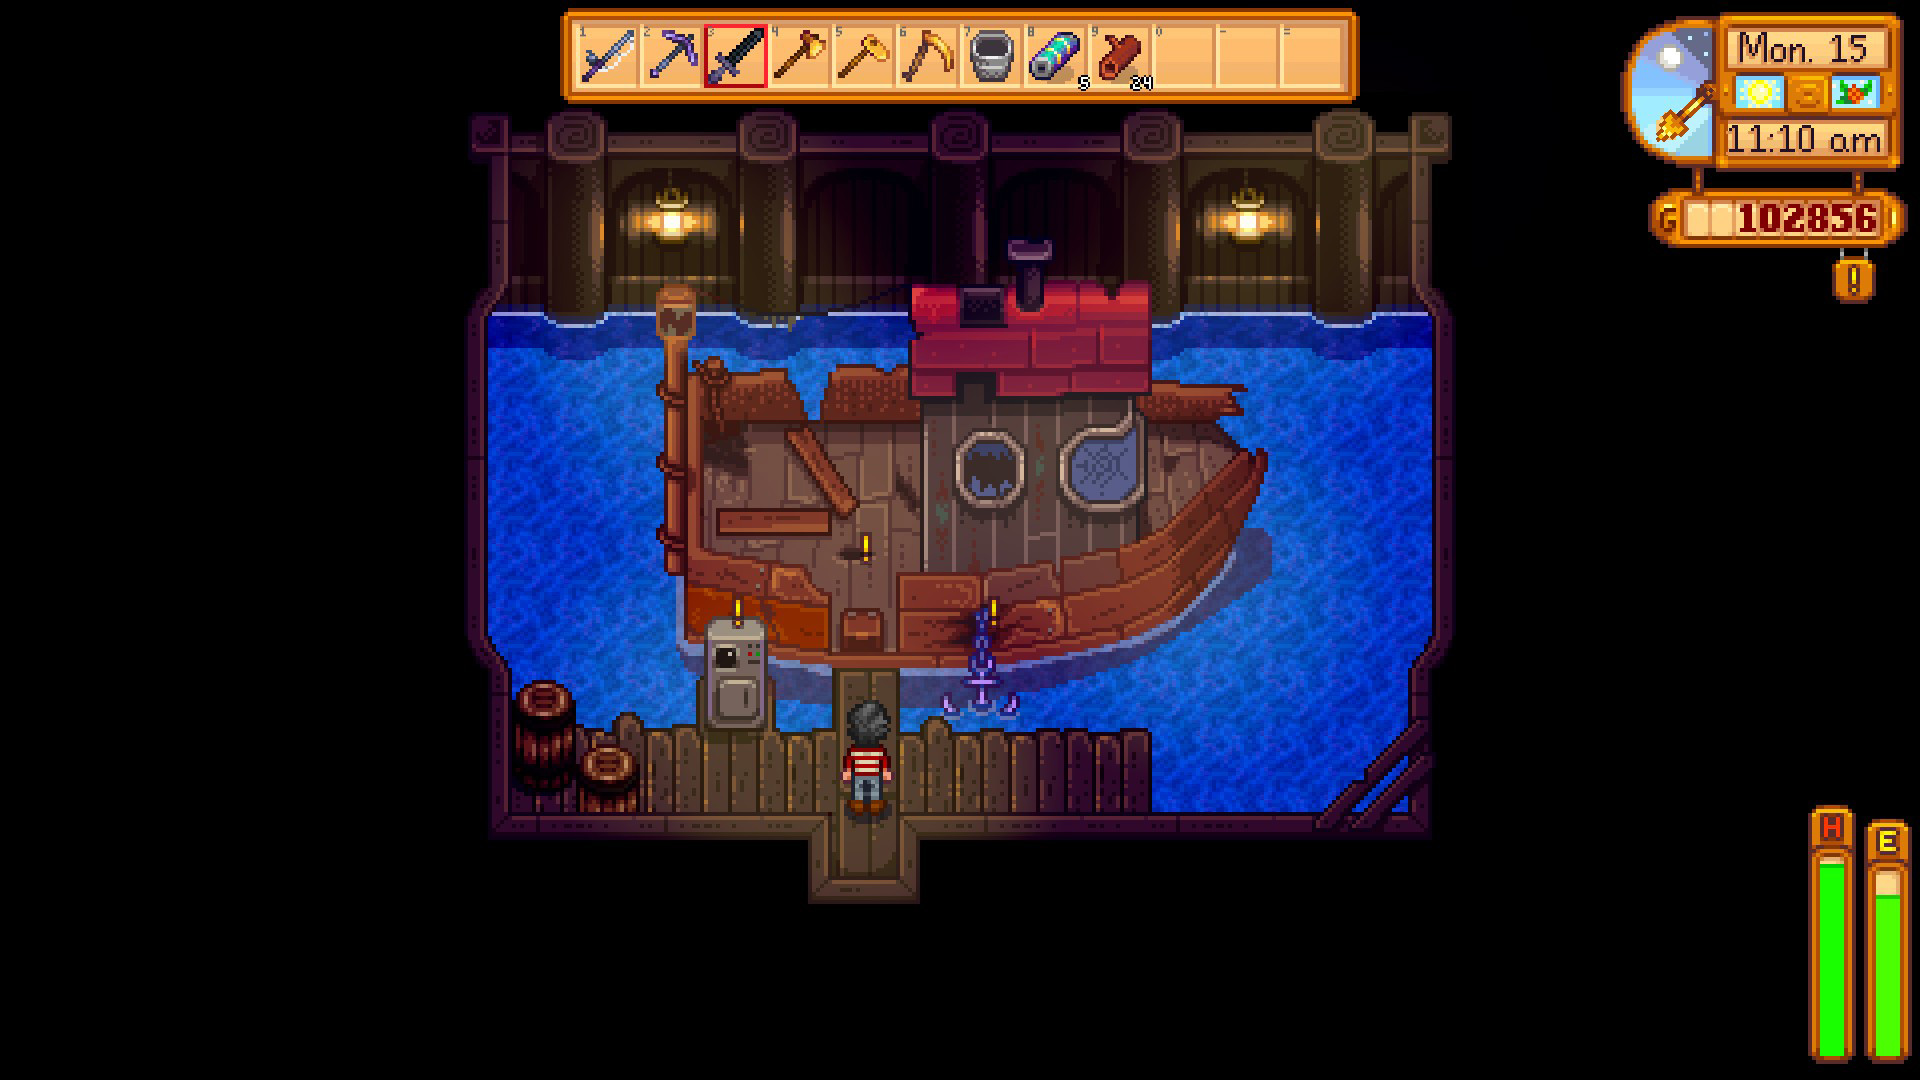 How to fix the boat in Stardew Valley